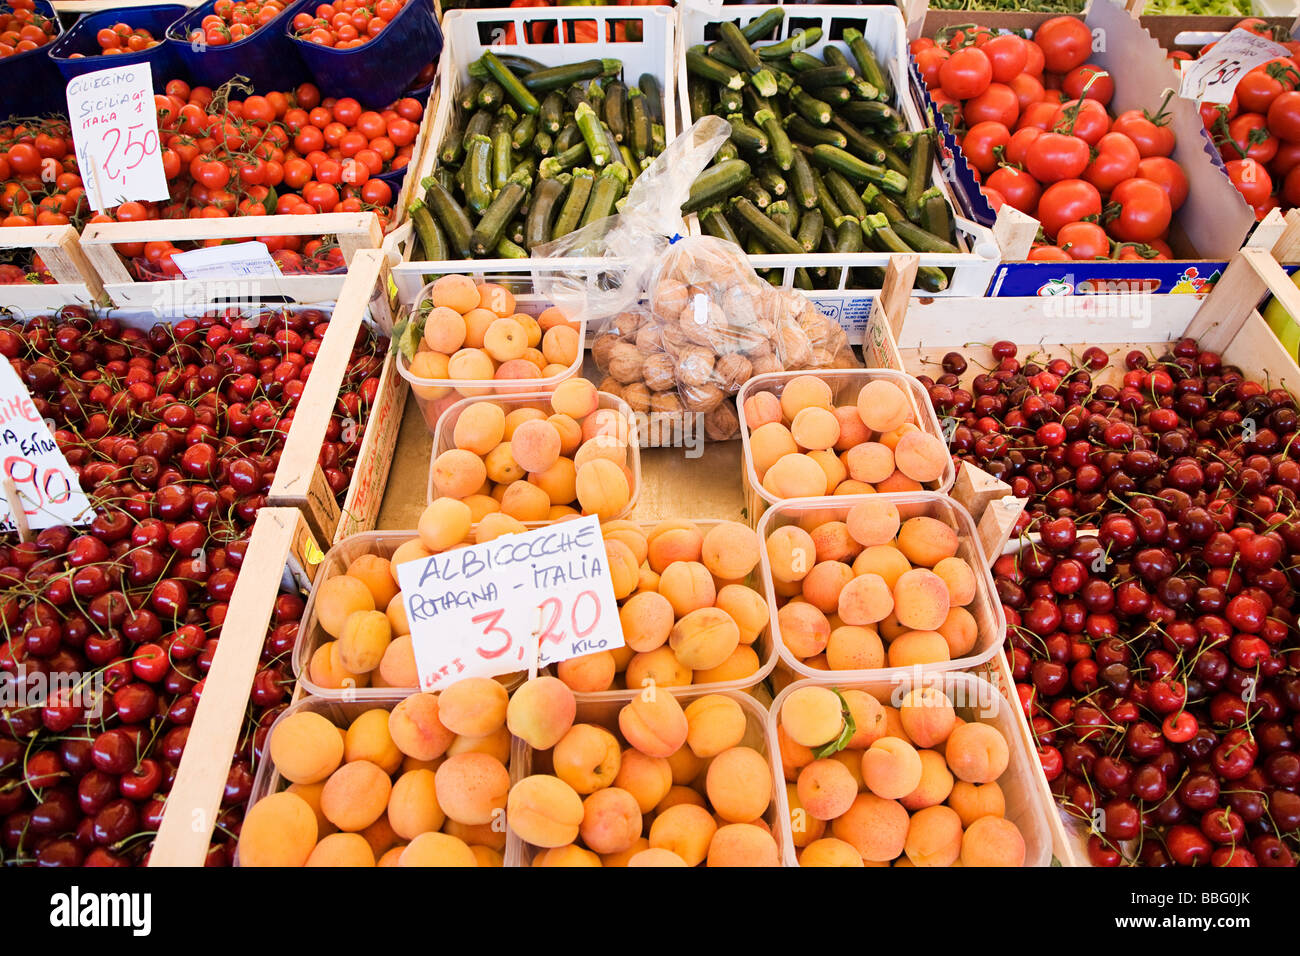 Fruit and vegetable stall - Stock Image